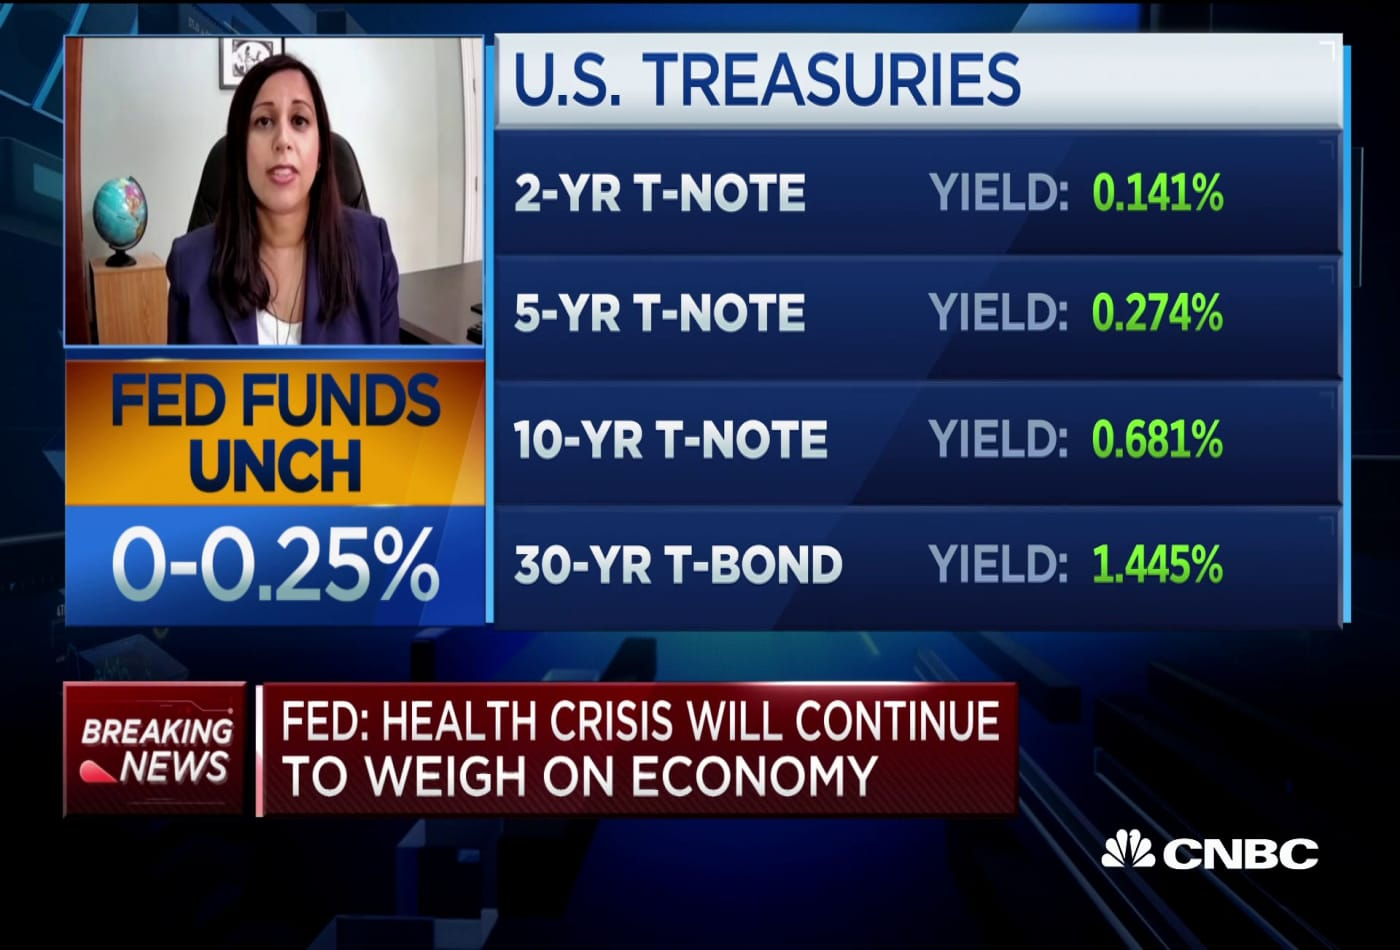 Gold and risk assets continue to be favorable following Fed decision: Strategist